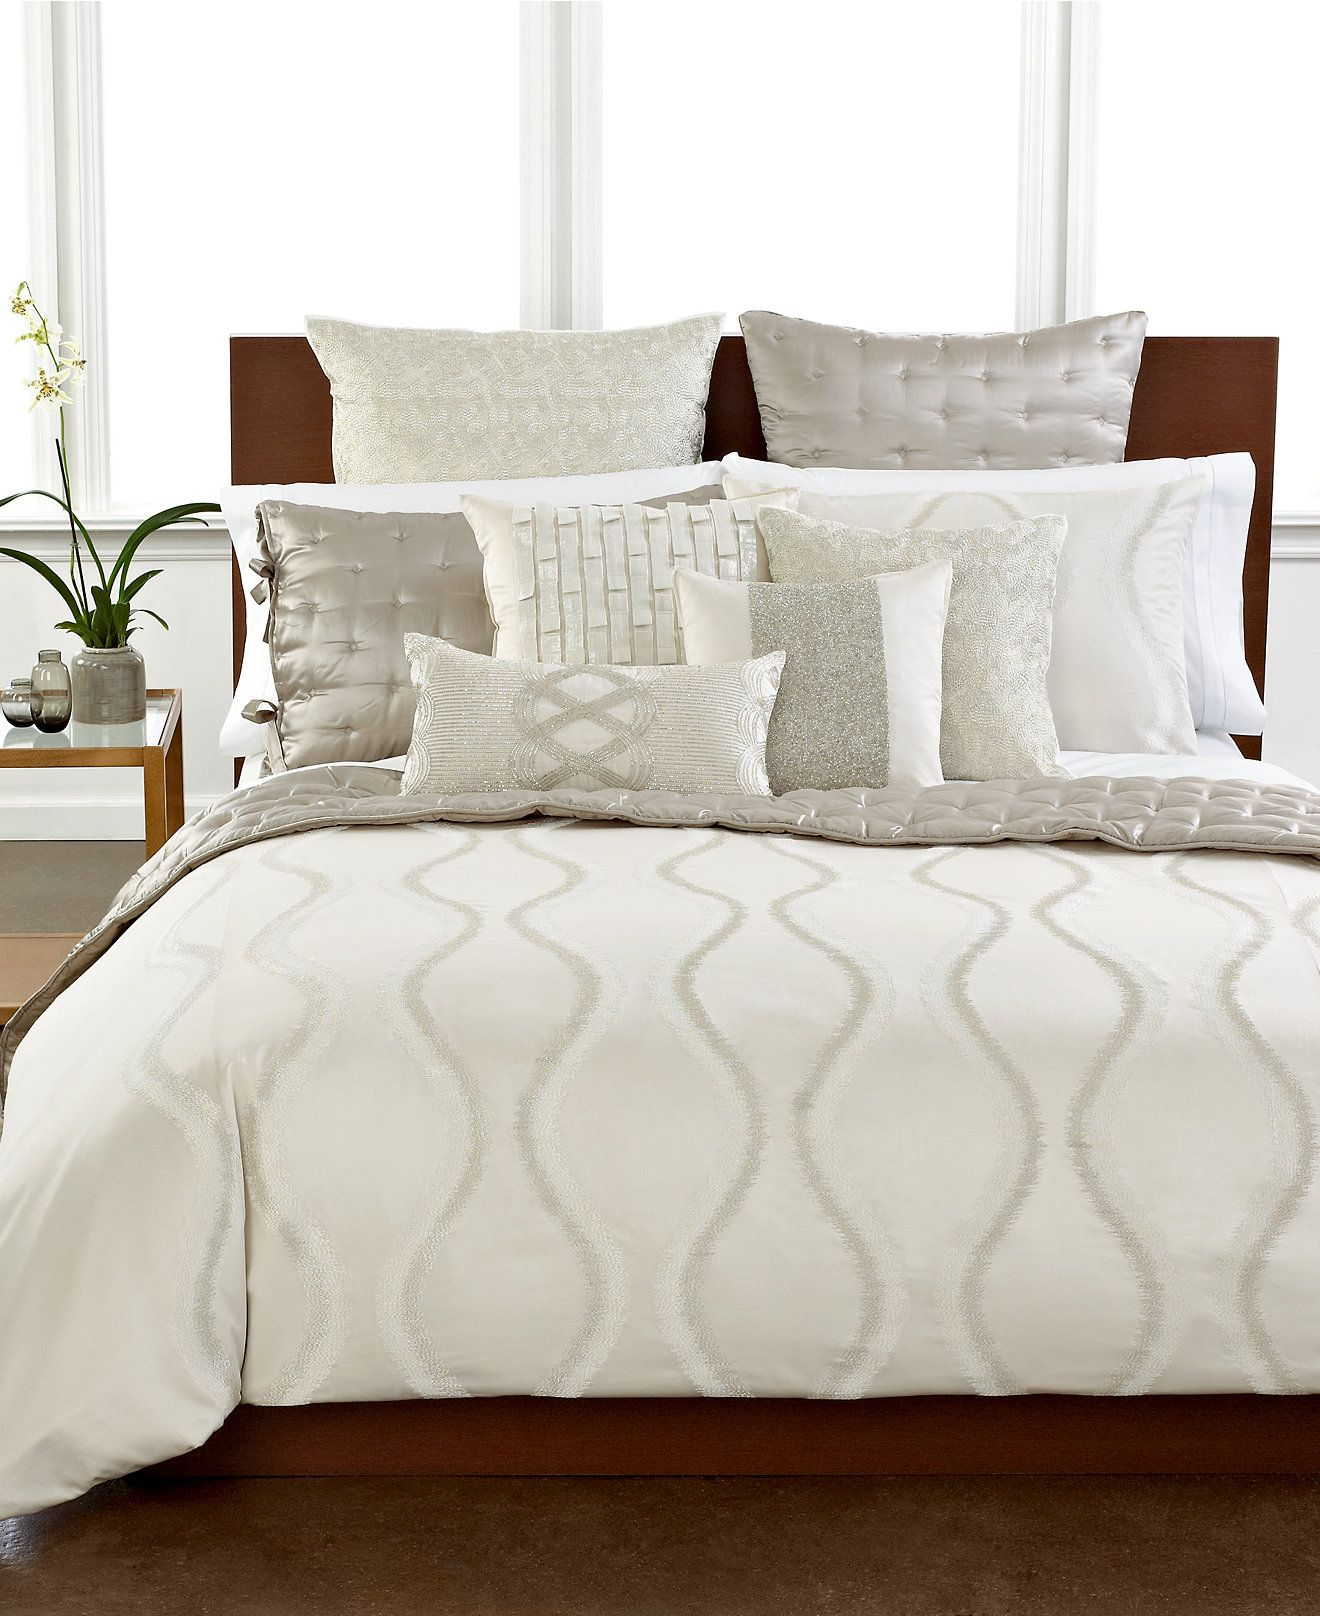 Finest Luster Bedding Collection Created Macy' Hotel